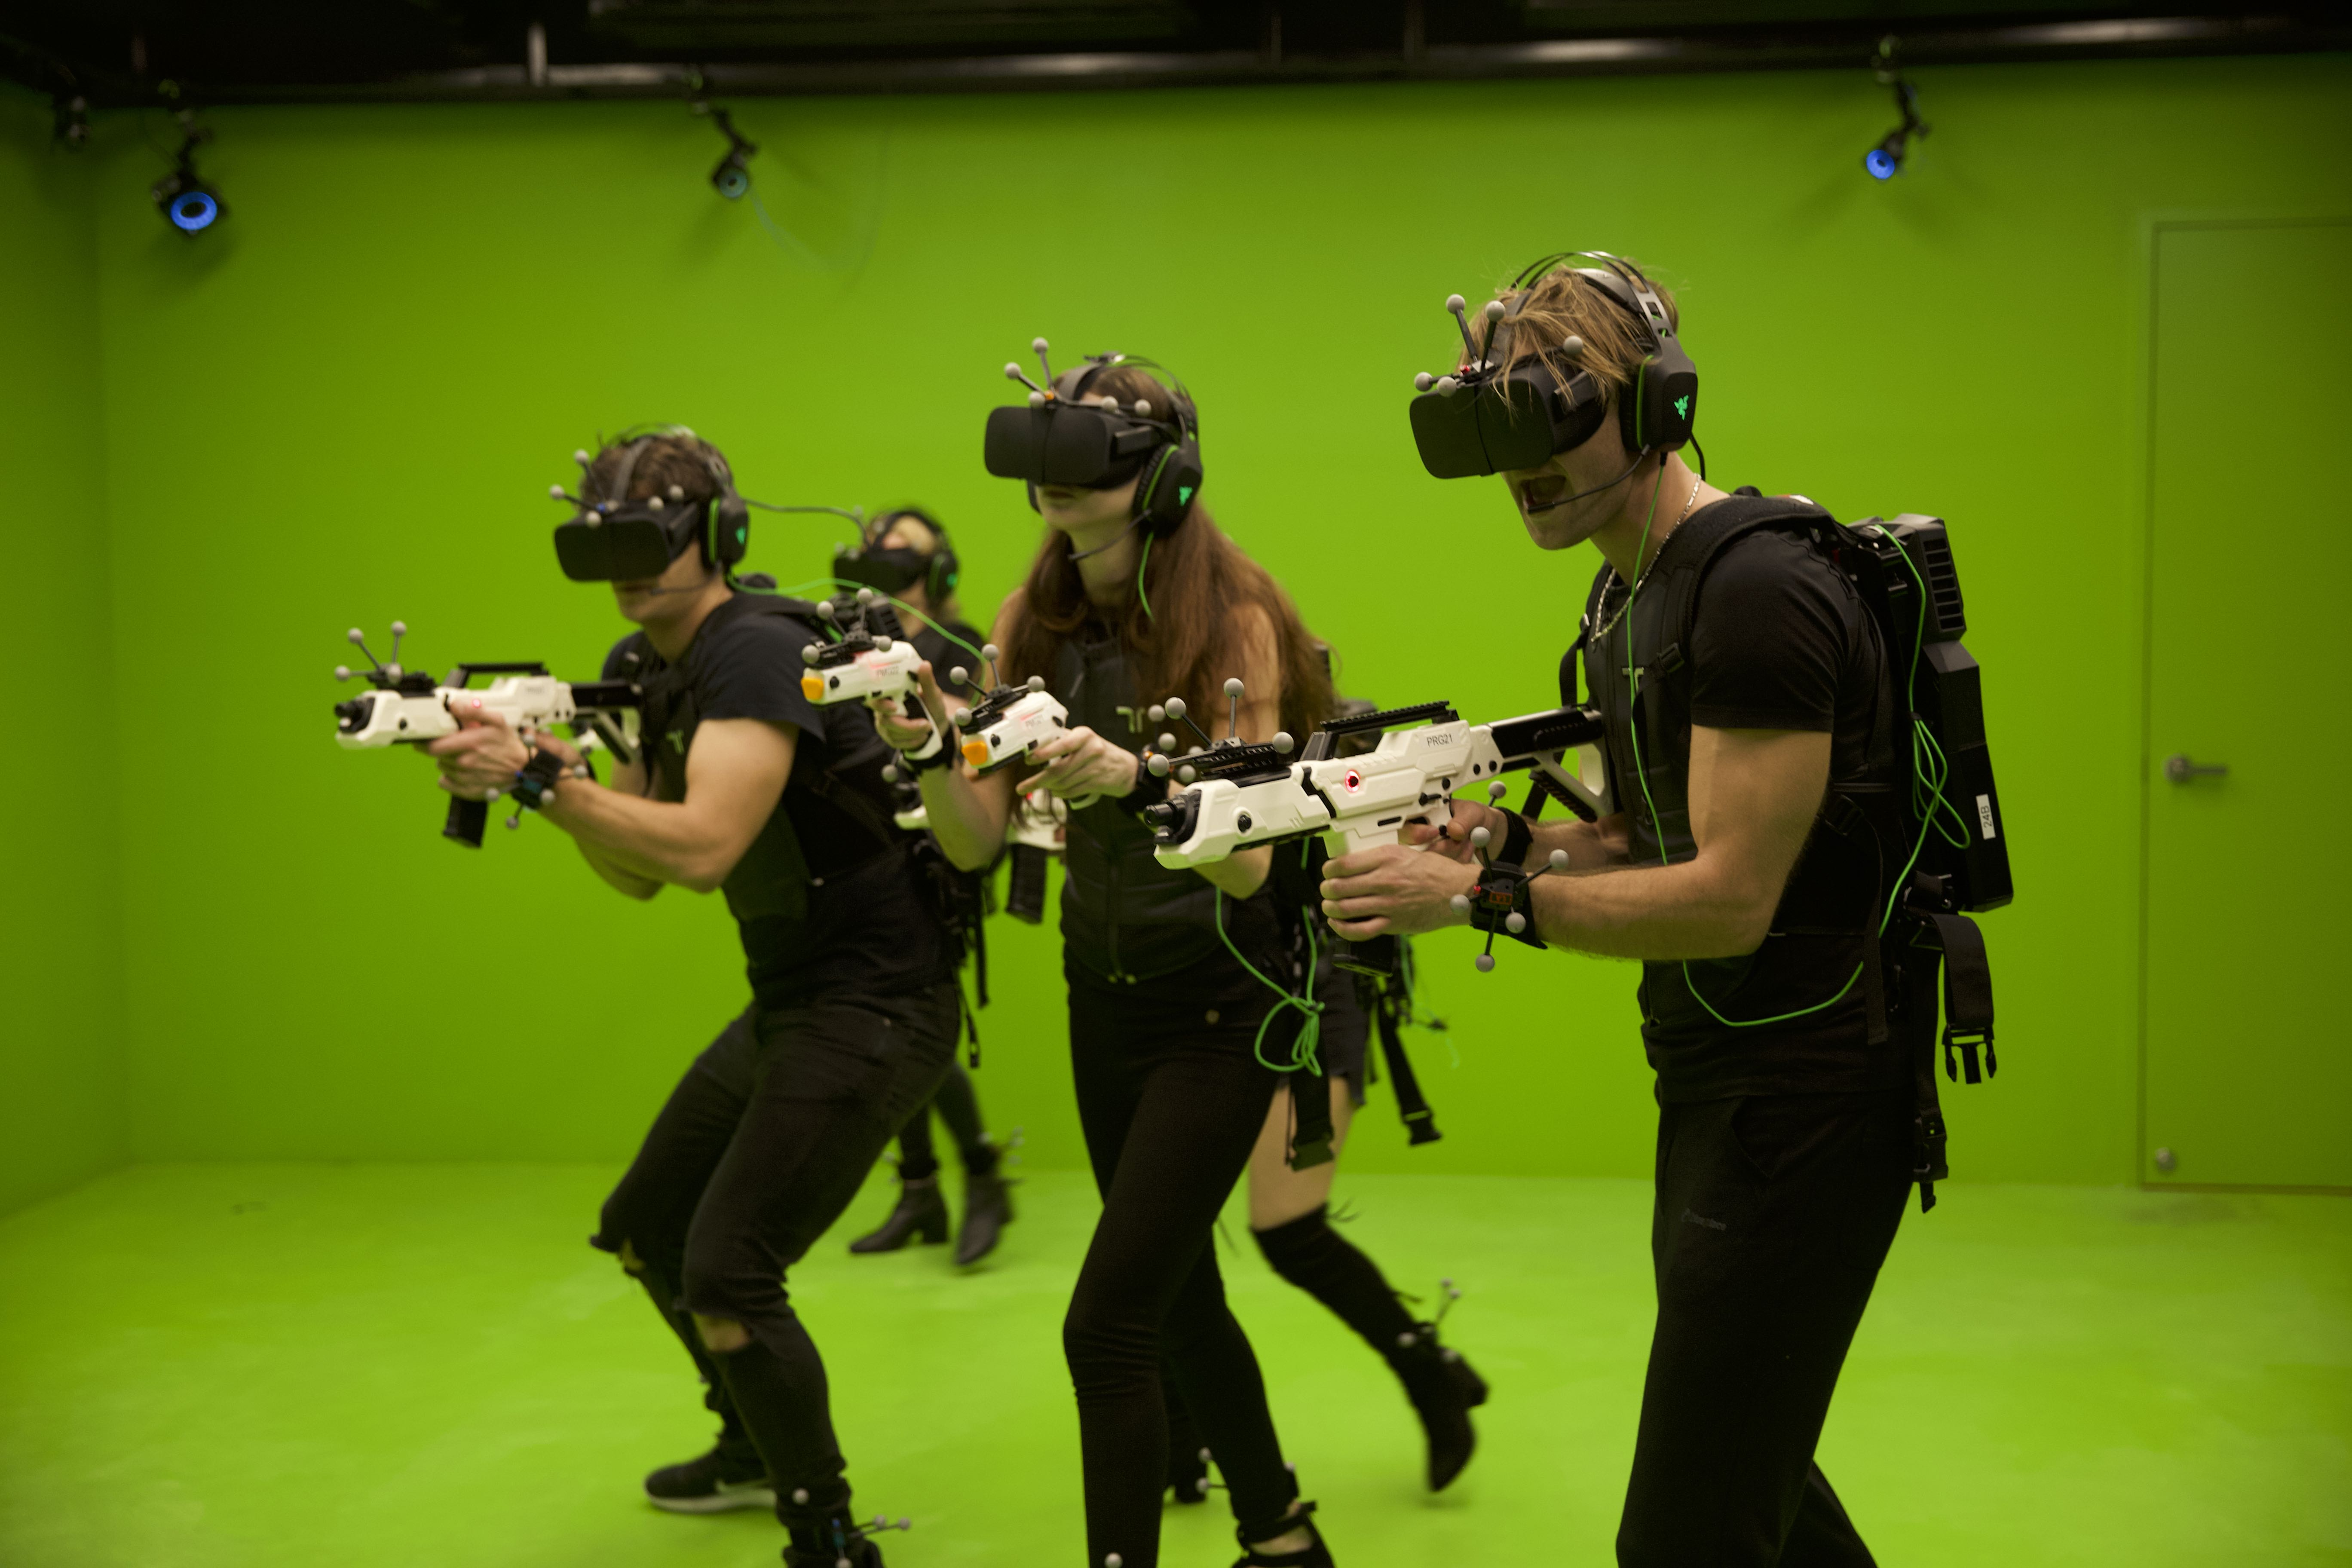 VR Experience for 4 pax (Off Peak) + 4 x Non-Alcoholic Drinks at Sandbox VR - Get Deals, Cashback and Rewards with ShopBack GO